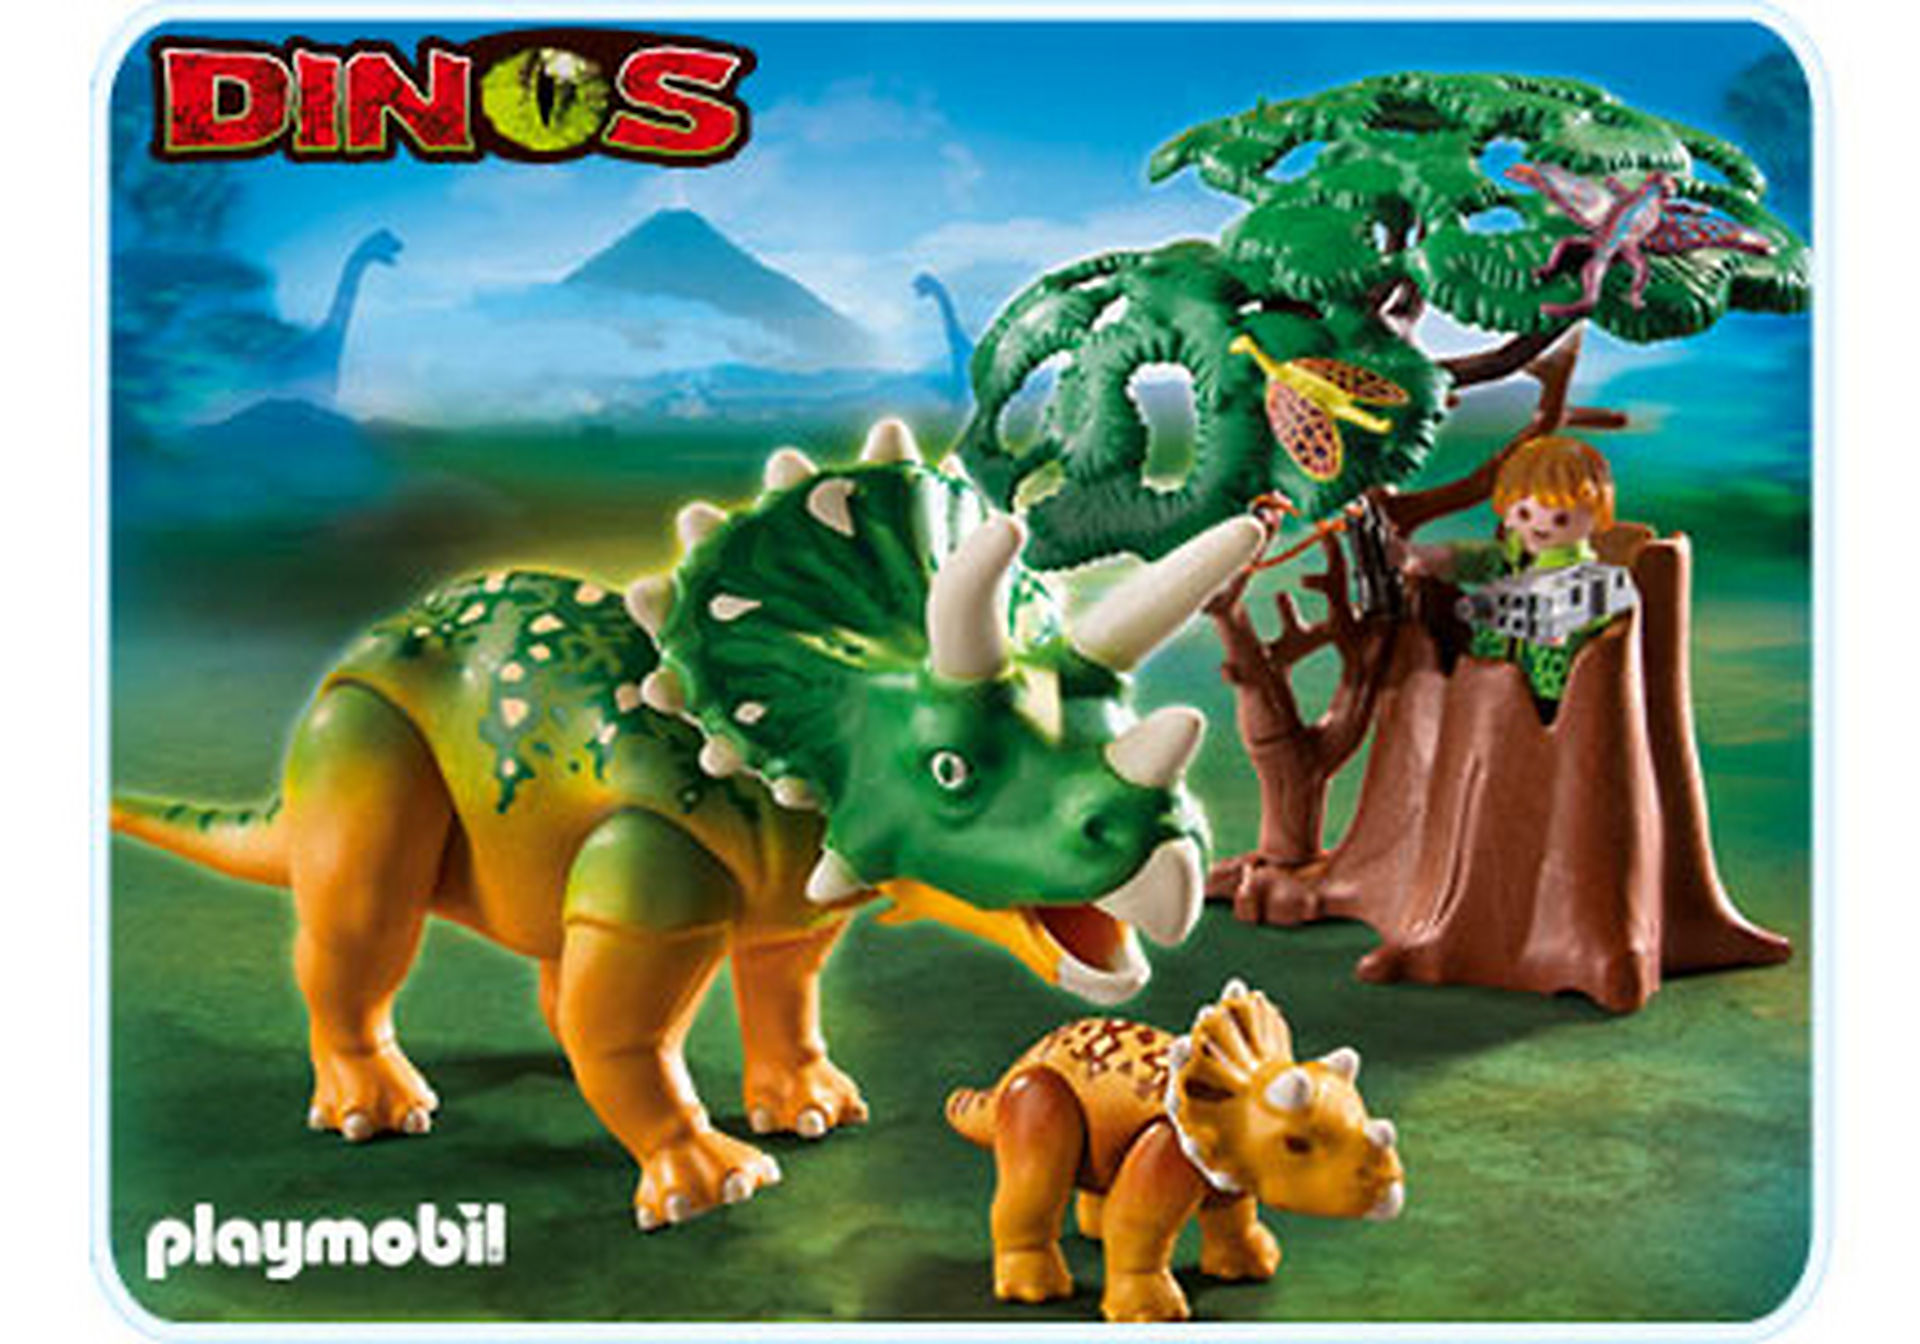 http://media.playmobil.com/i/playmobil/5234-A_product_detail/Triceratops mit Baby